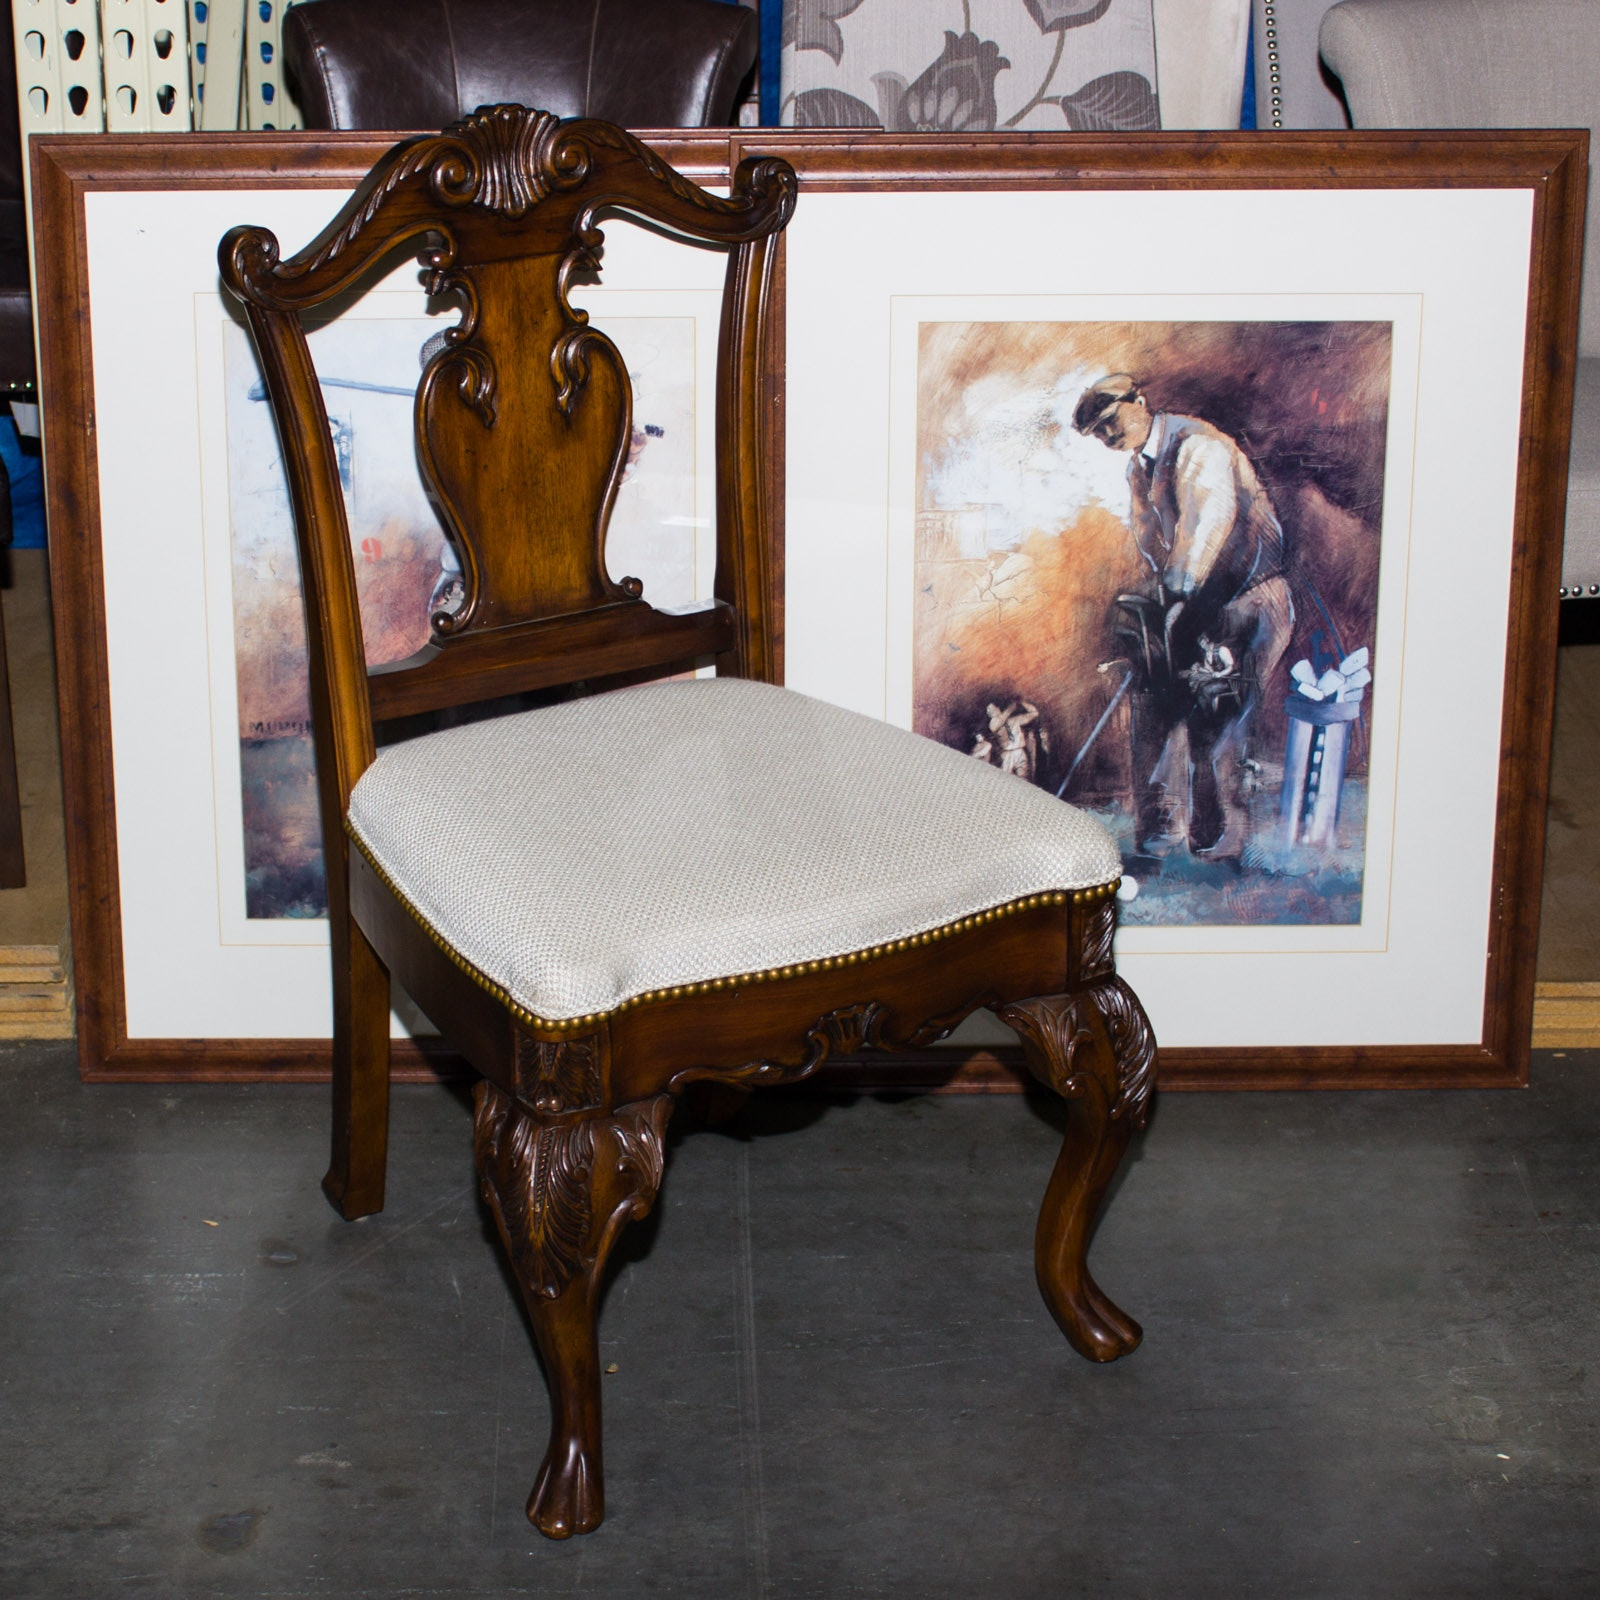 Queen Anne Style Chair and Pair of Framed Golf Offset Lithographs